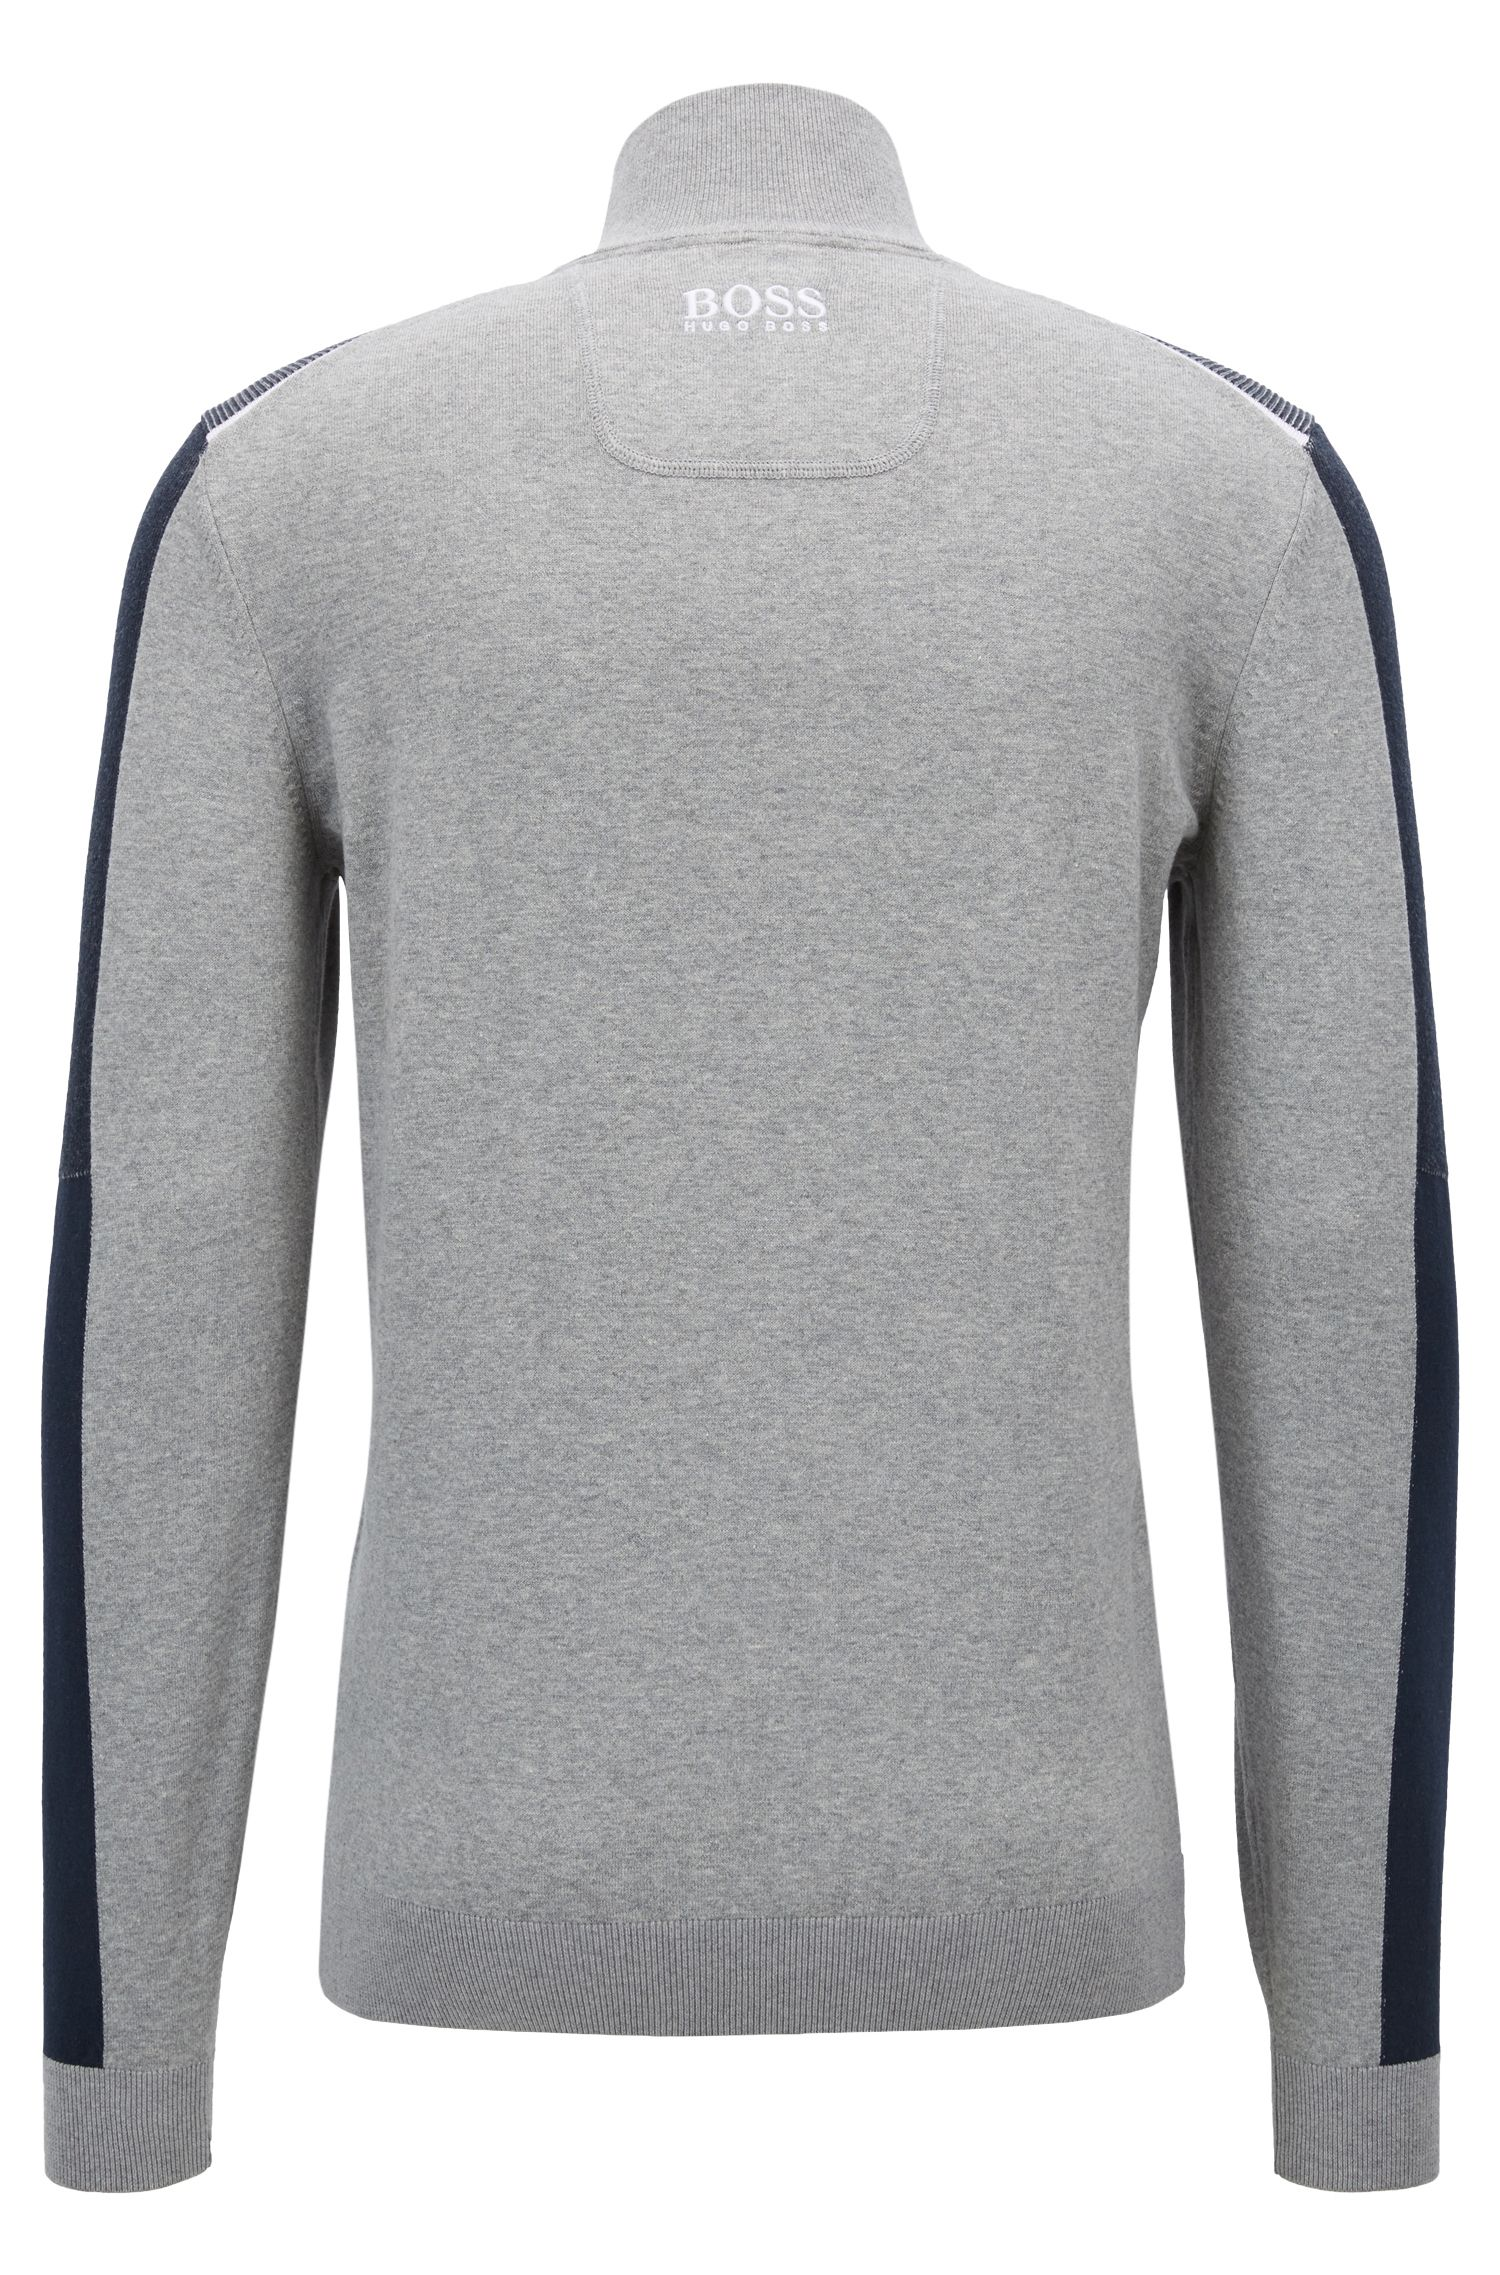 Color-block sweater in a water-repellent cotton blend